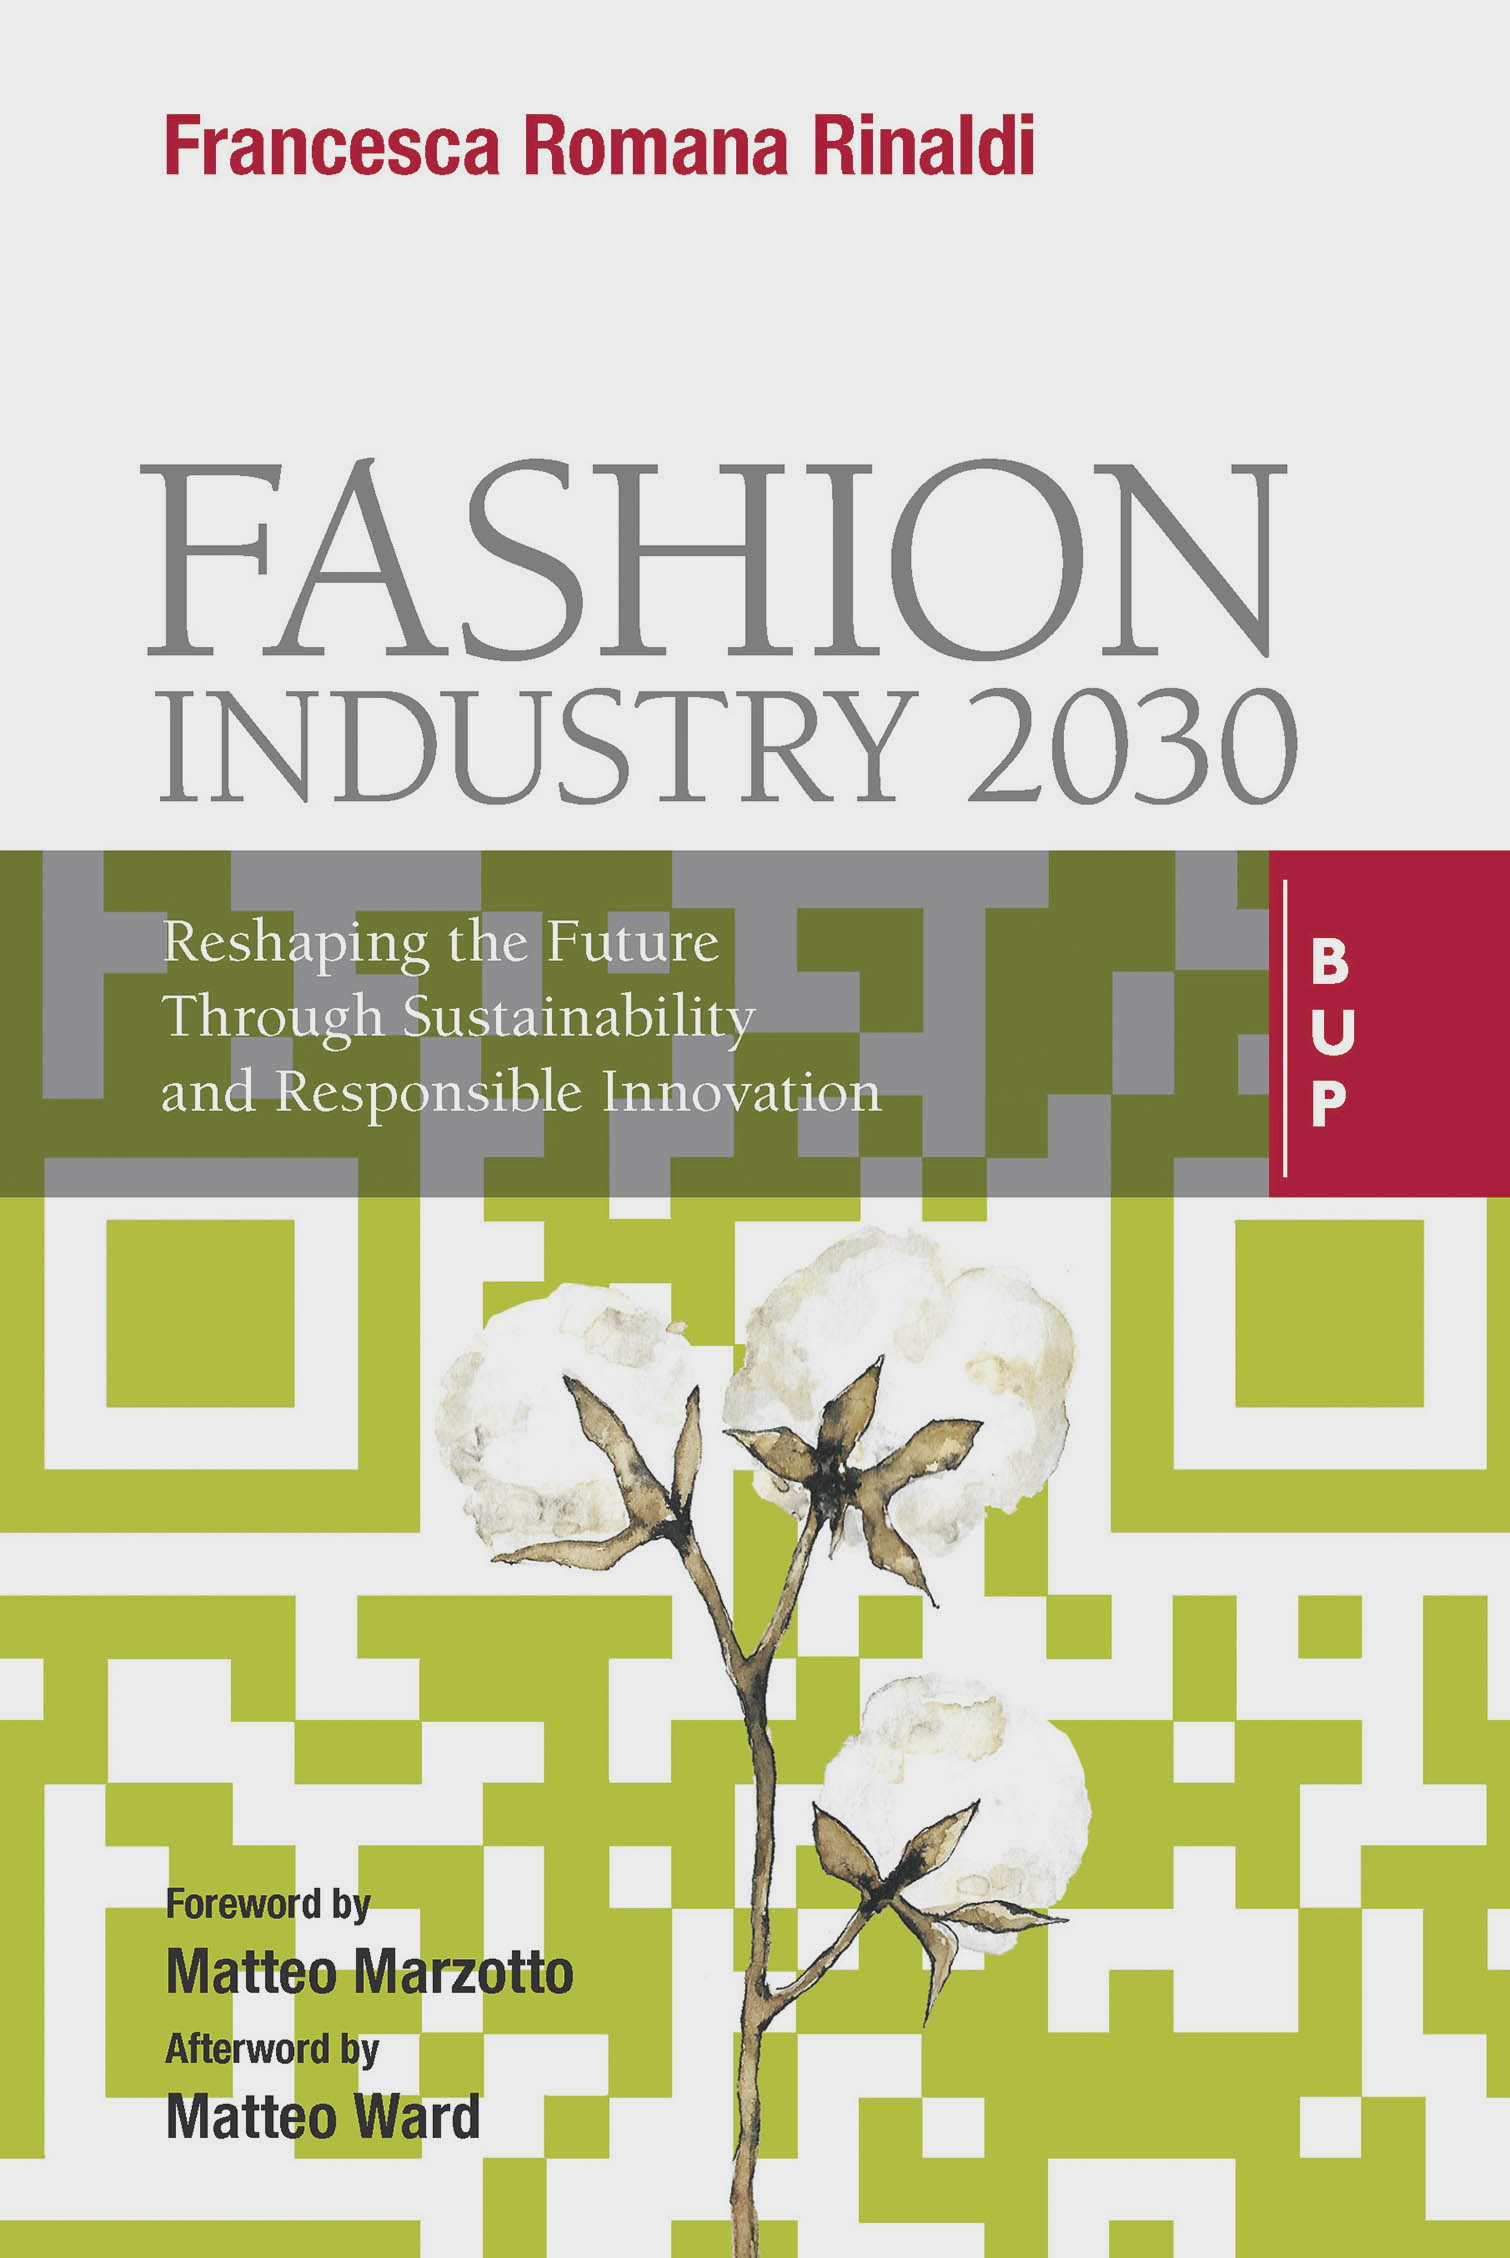 future of fashion, francesca romana rinaldi, book 2030, books about fashion, interview about future of fashion, what is the future of sustainability?, what is the future of fashion?, will the future be sustainable?, francesca rinaldi's book 2030, fashion industry 2030 book, un fashion expert, sustainability talk, sustainable fashion, ethical fashion, circular economy, nachhaltige mode, nachhaltigkeit in der Zukunft,